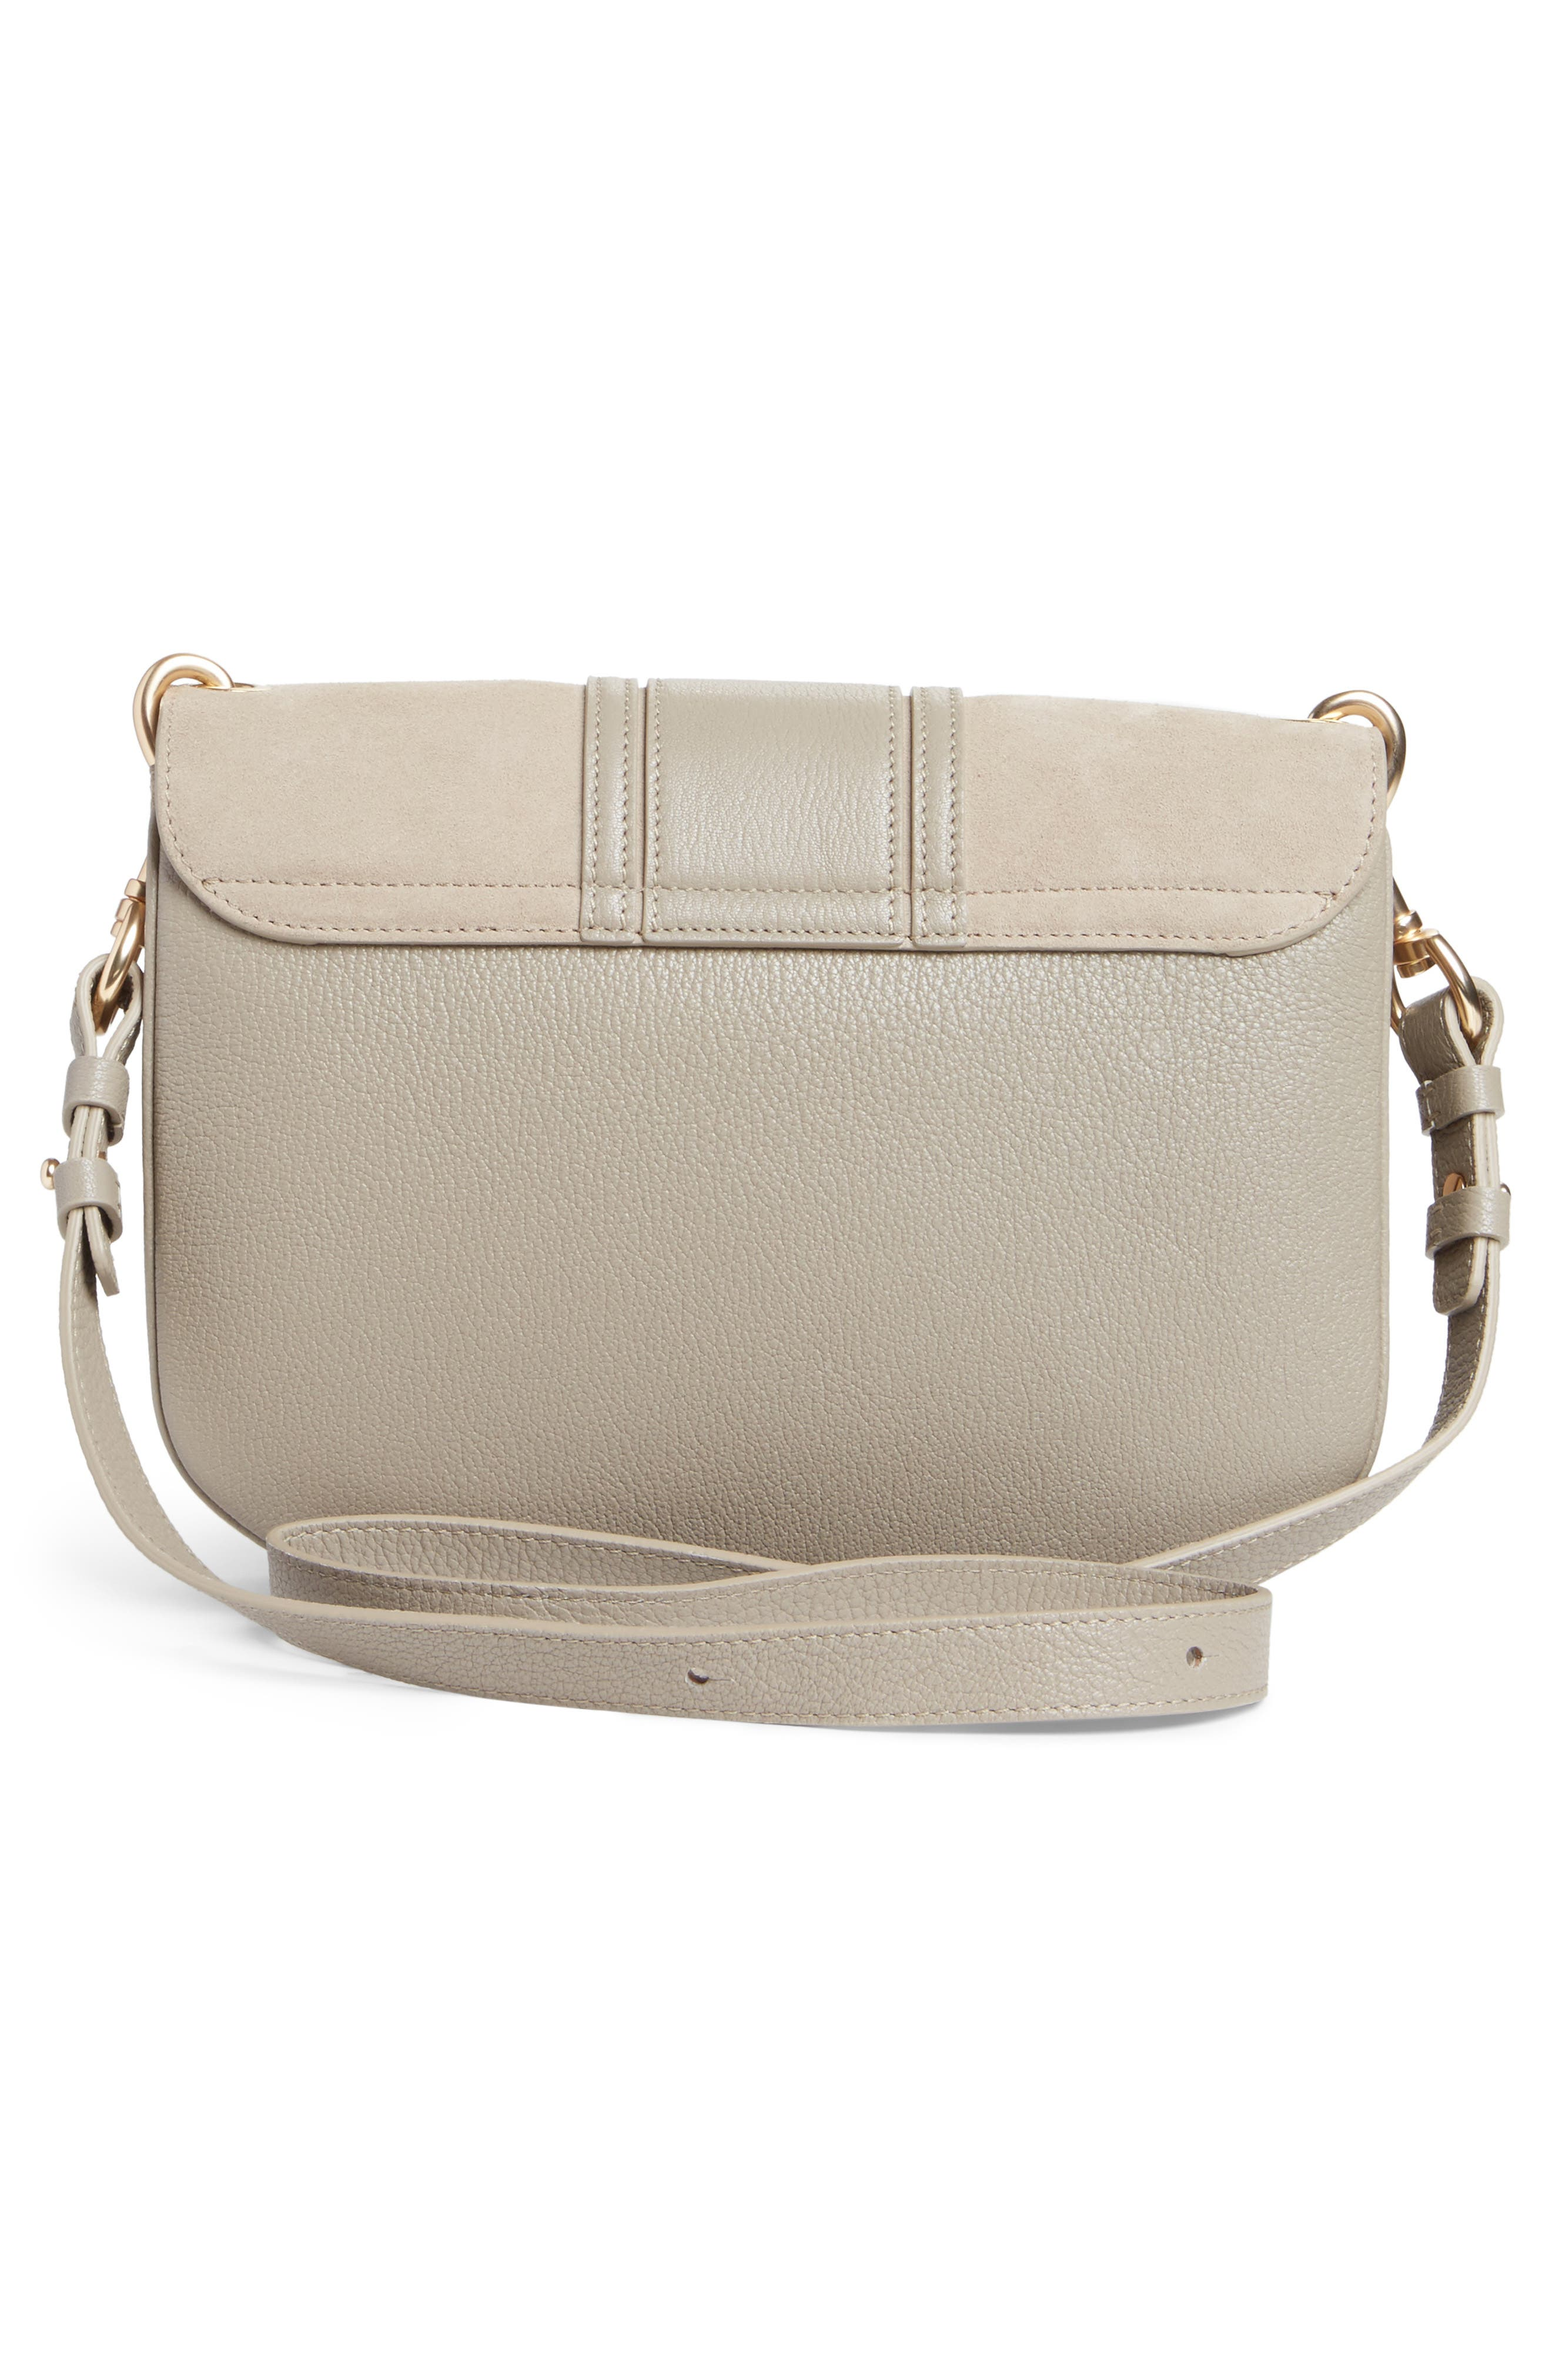 Medium Hana Leather Satchel,                             Alternate thumbnail 3, color,                             032